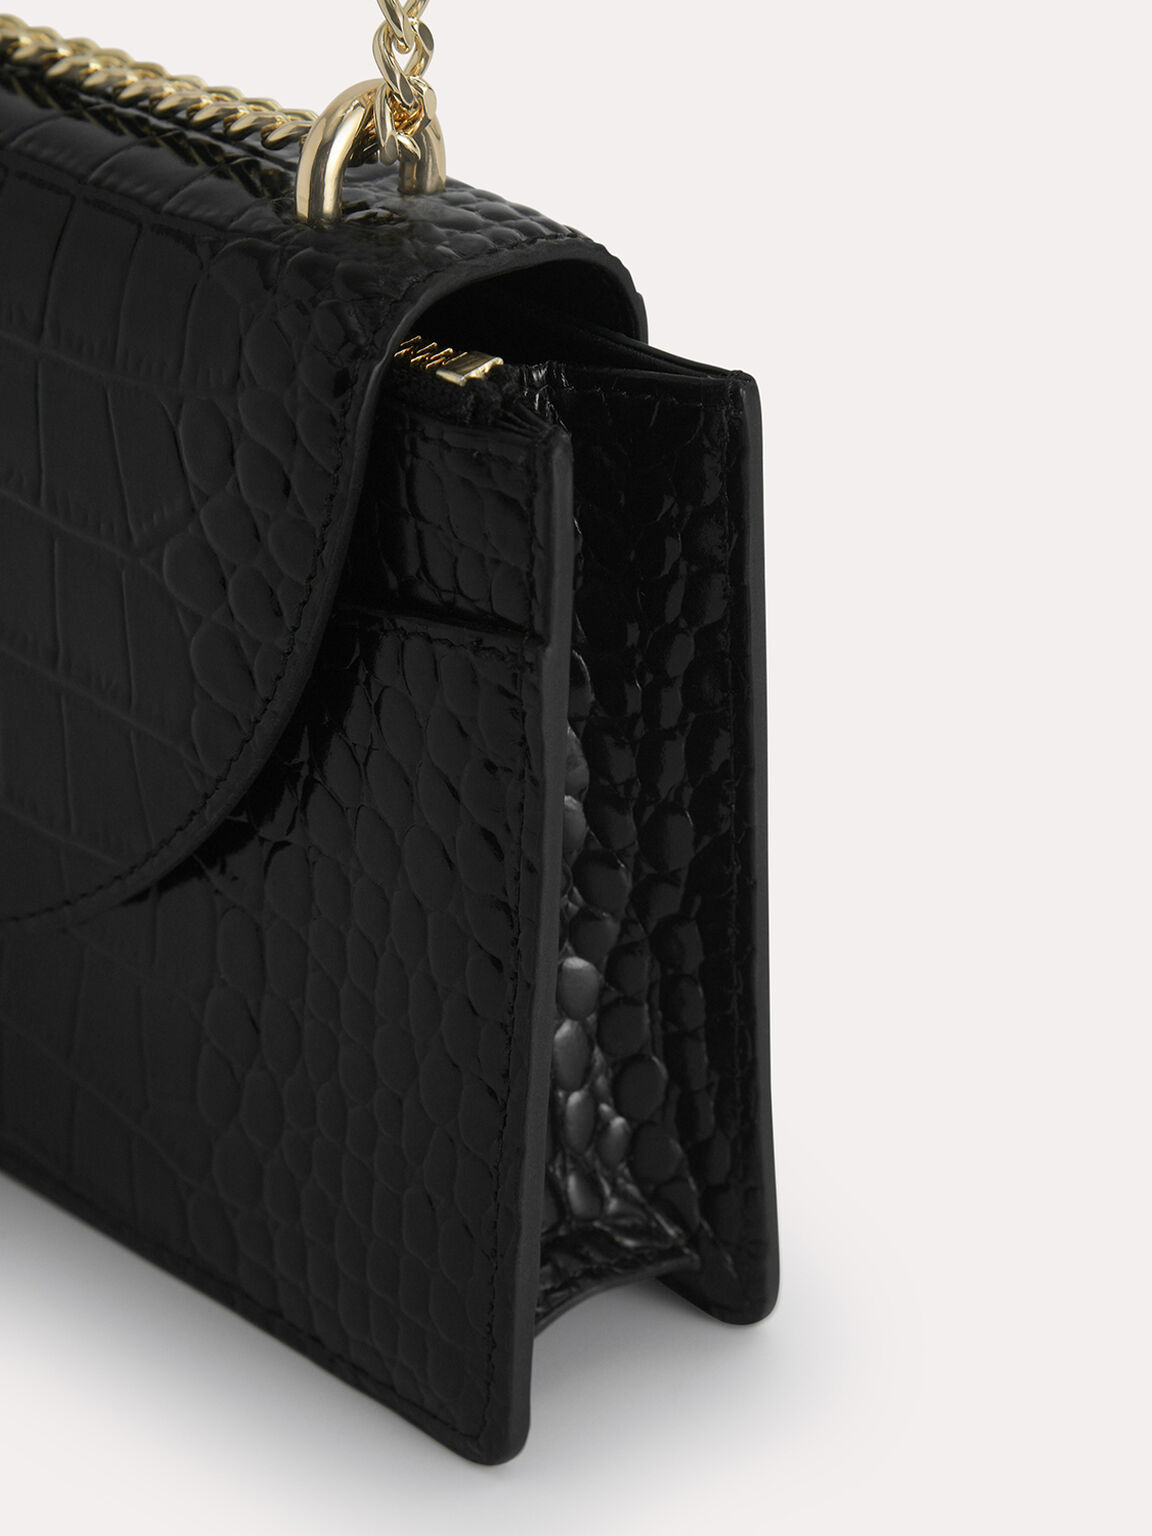 Textured Leather Travel Organisers, Black, hi-res